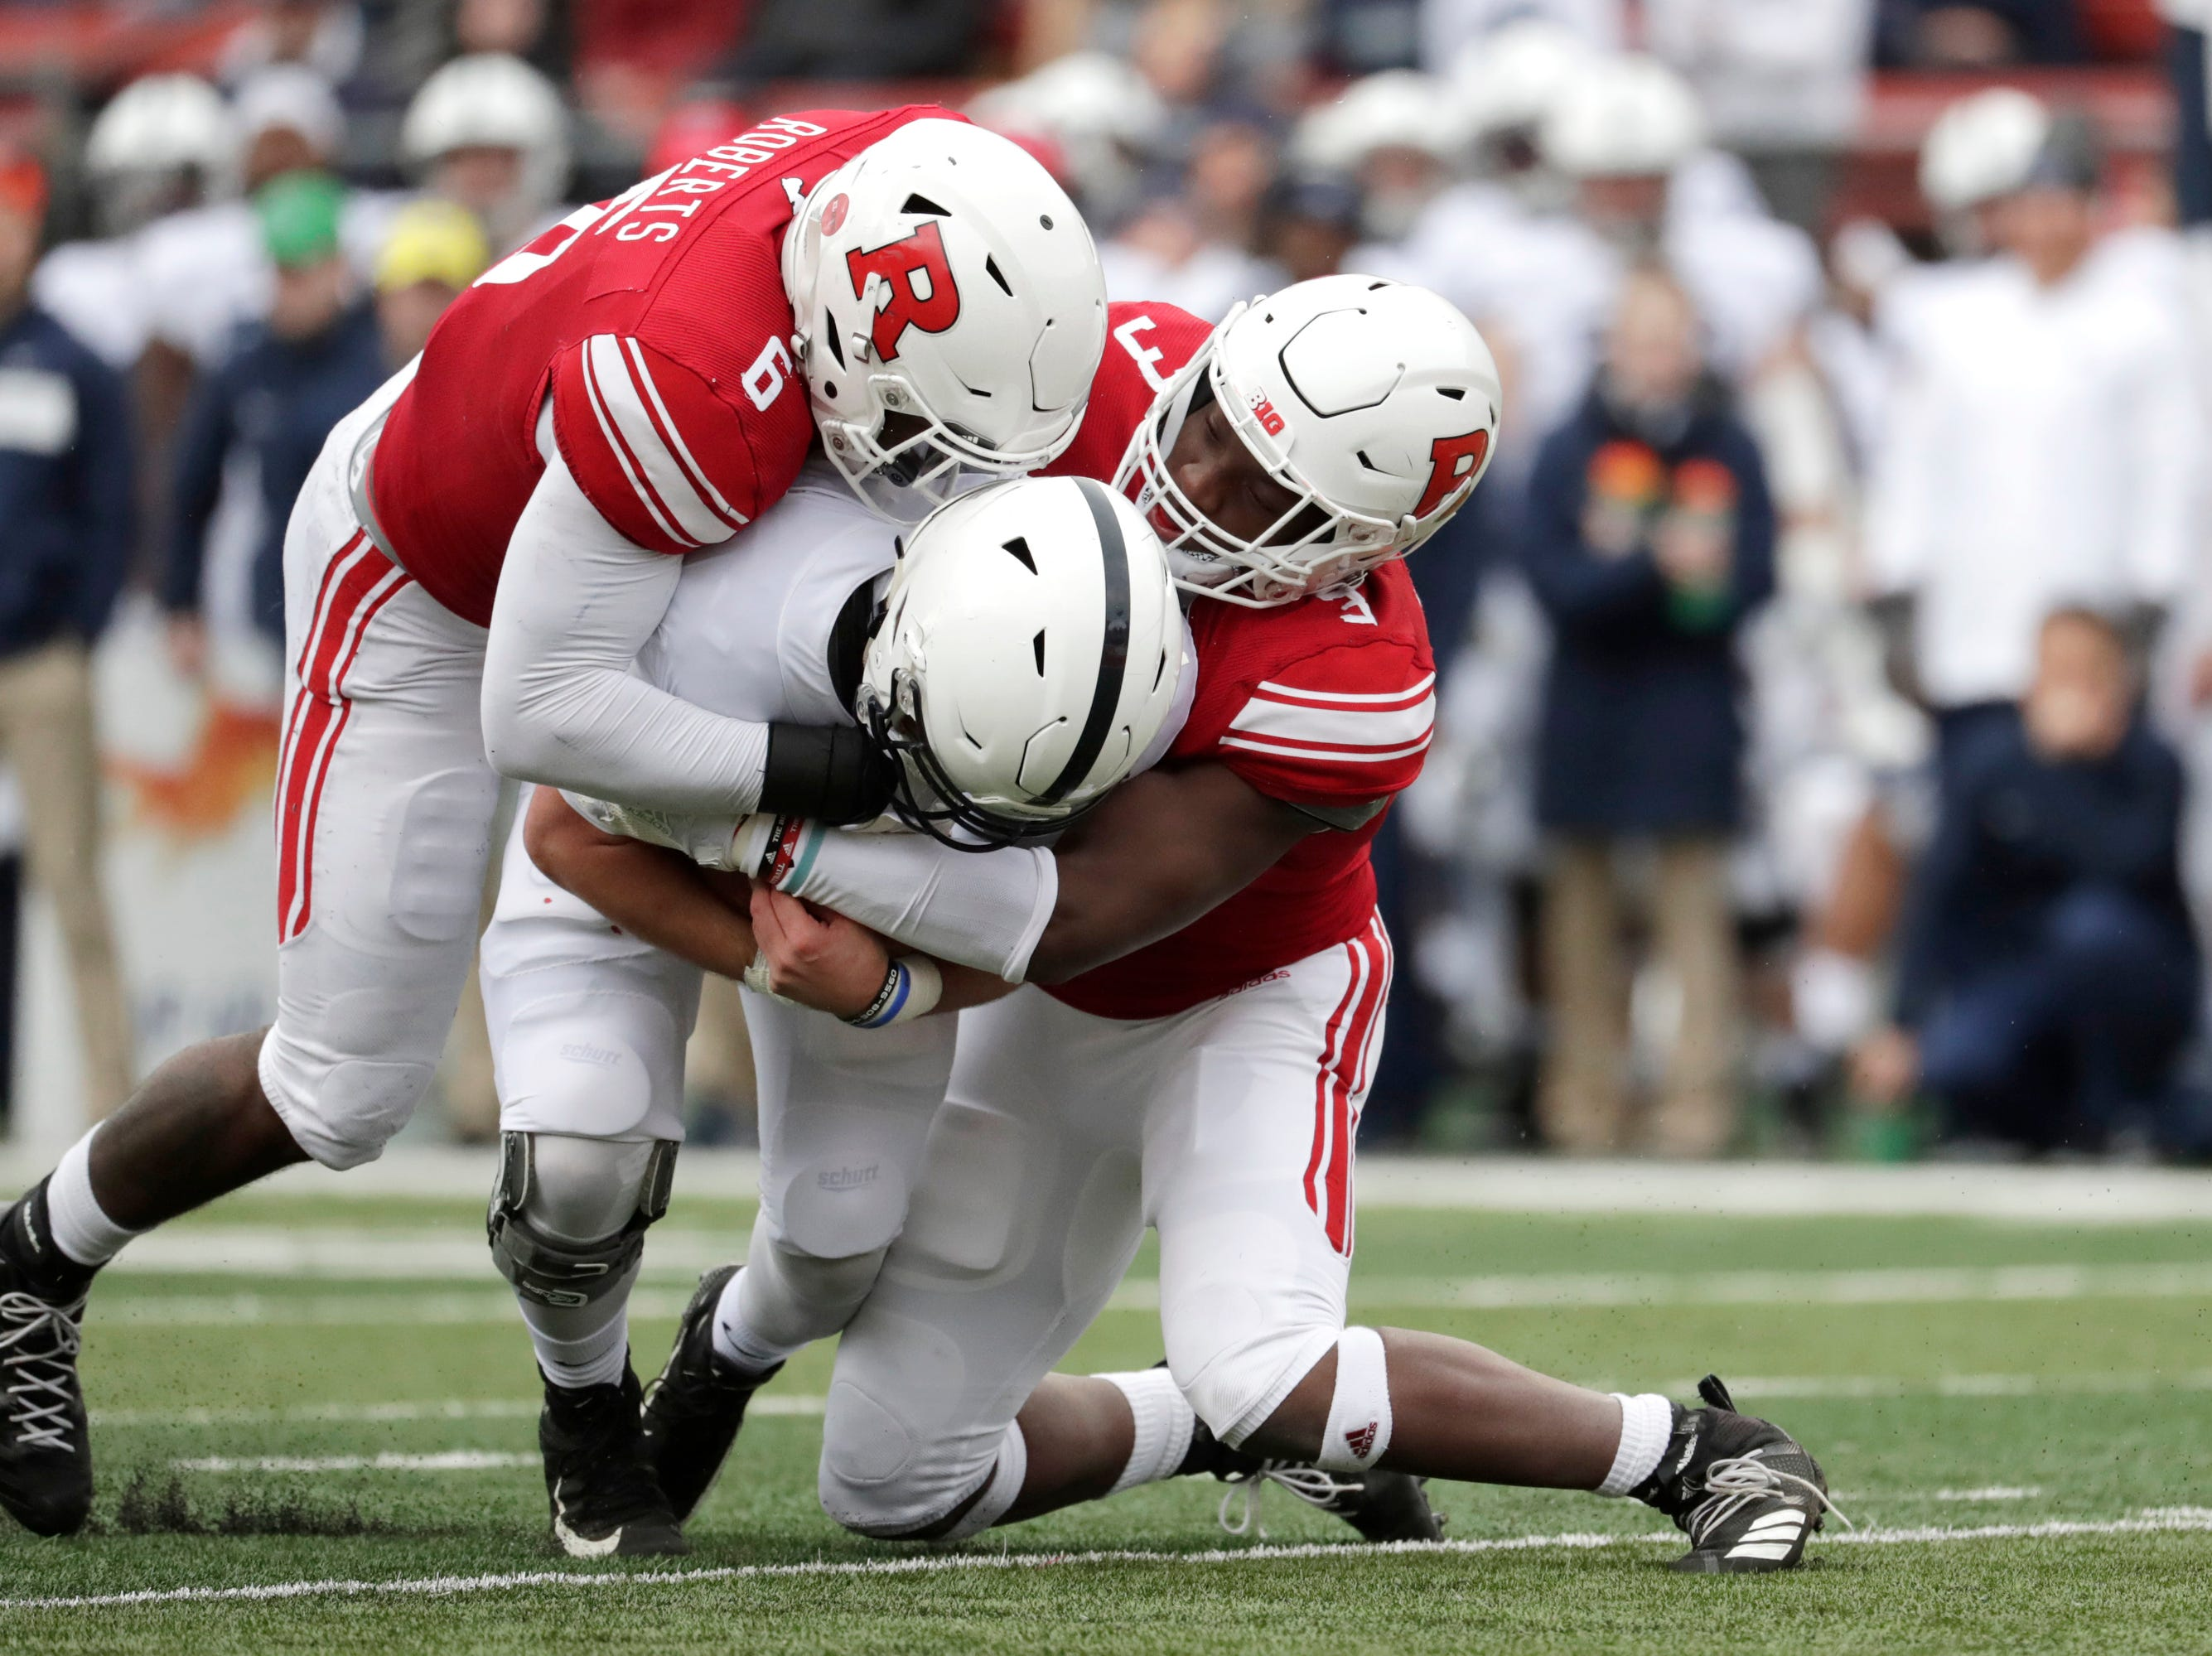 Penn State quarterback Trace McSorley, center, is tackled by Rutgers linebacker Deonte Roberts, left, and linebacker Olakunle Fatukasi during the first half of an NCAA college football game, Saturday, Nov. 17, 2018, in Piscataway, N.J. (AP Photo/Julio Cortez)